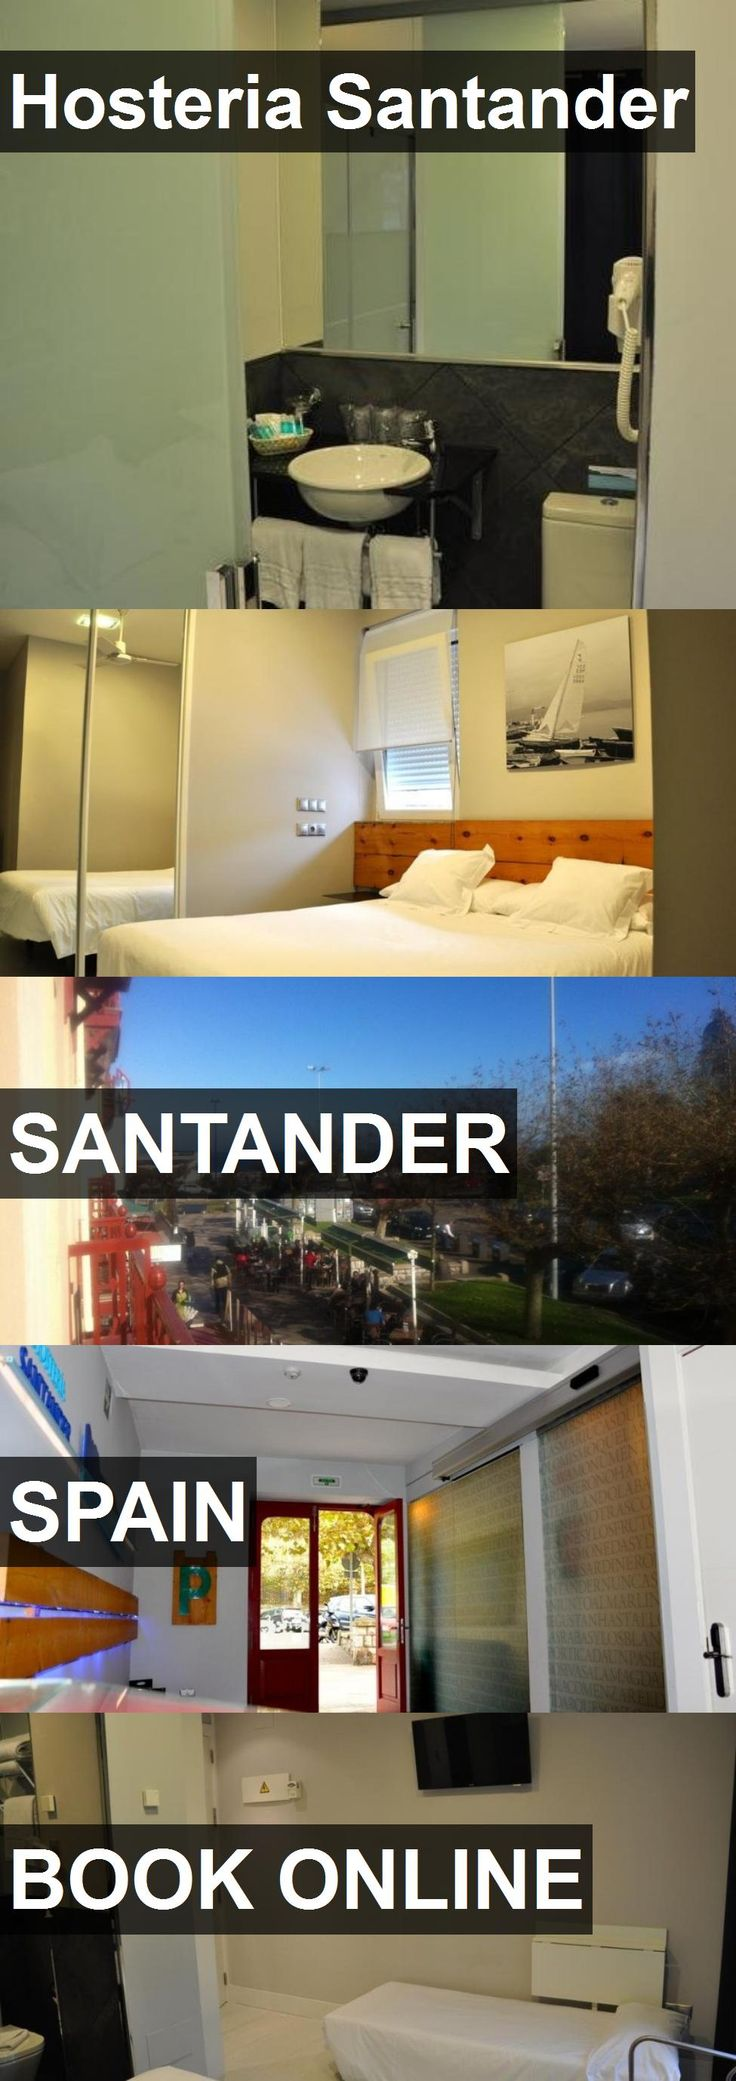 Hotel Hosteria Santander in Santander, Spain. For more information, photos, reviews and best prices please follow the link. #Spain #Santander #travel #vacation #hotel